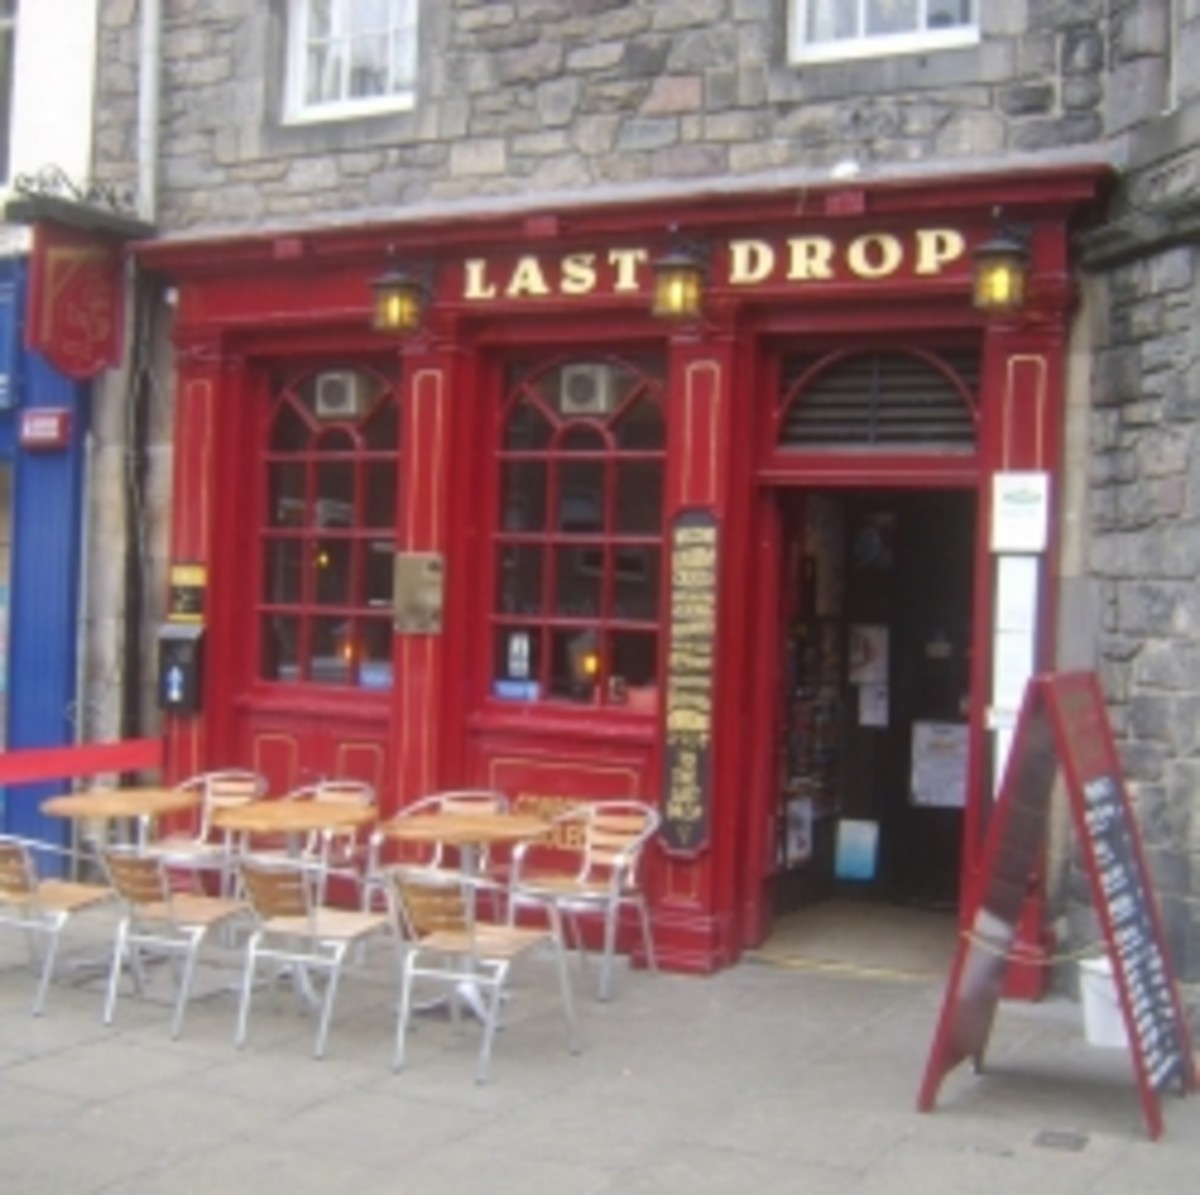 Entrance to The Last Drop Tavern